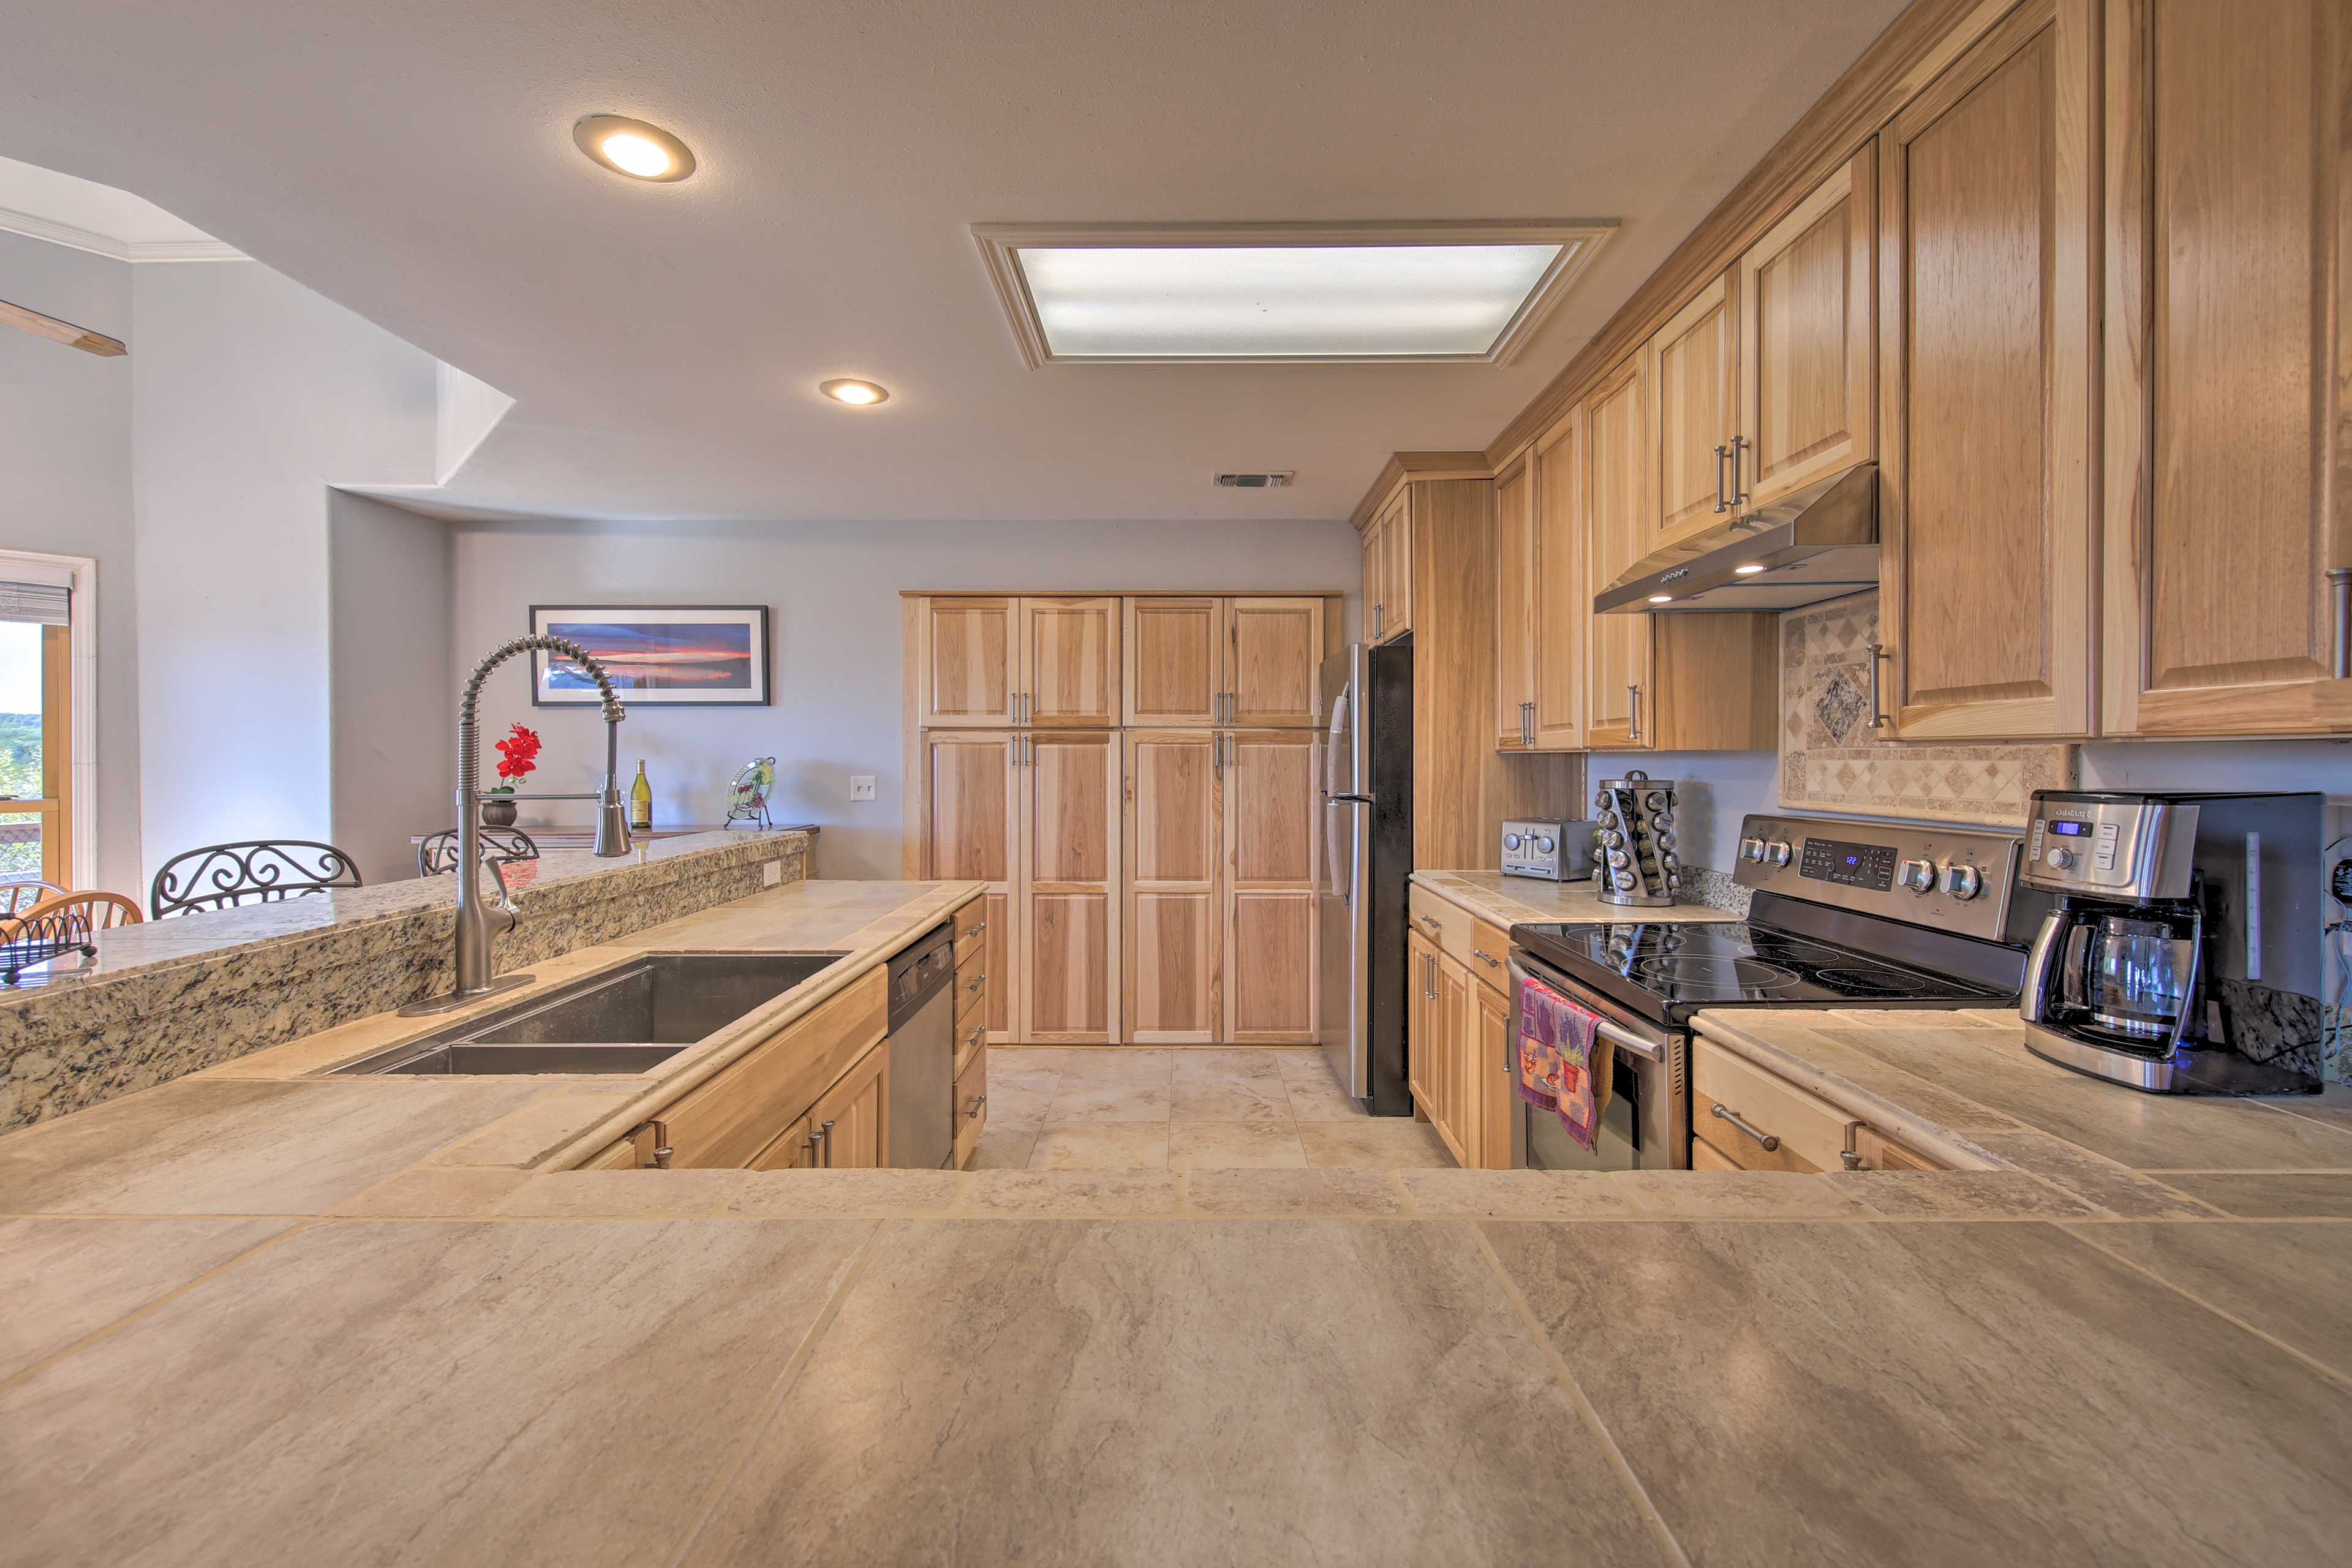 You'll have plenty of space to spread out your food on the countertops.